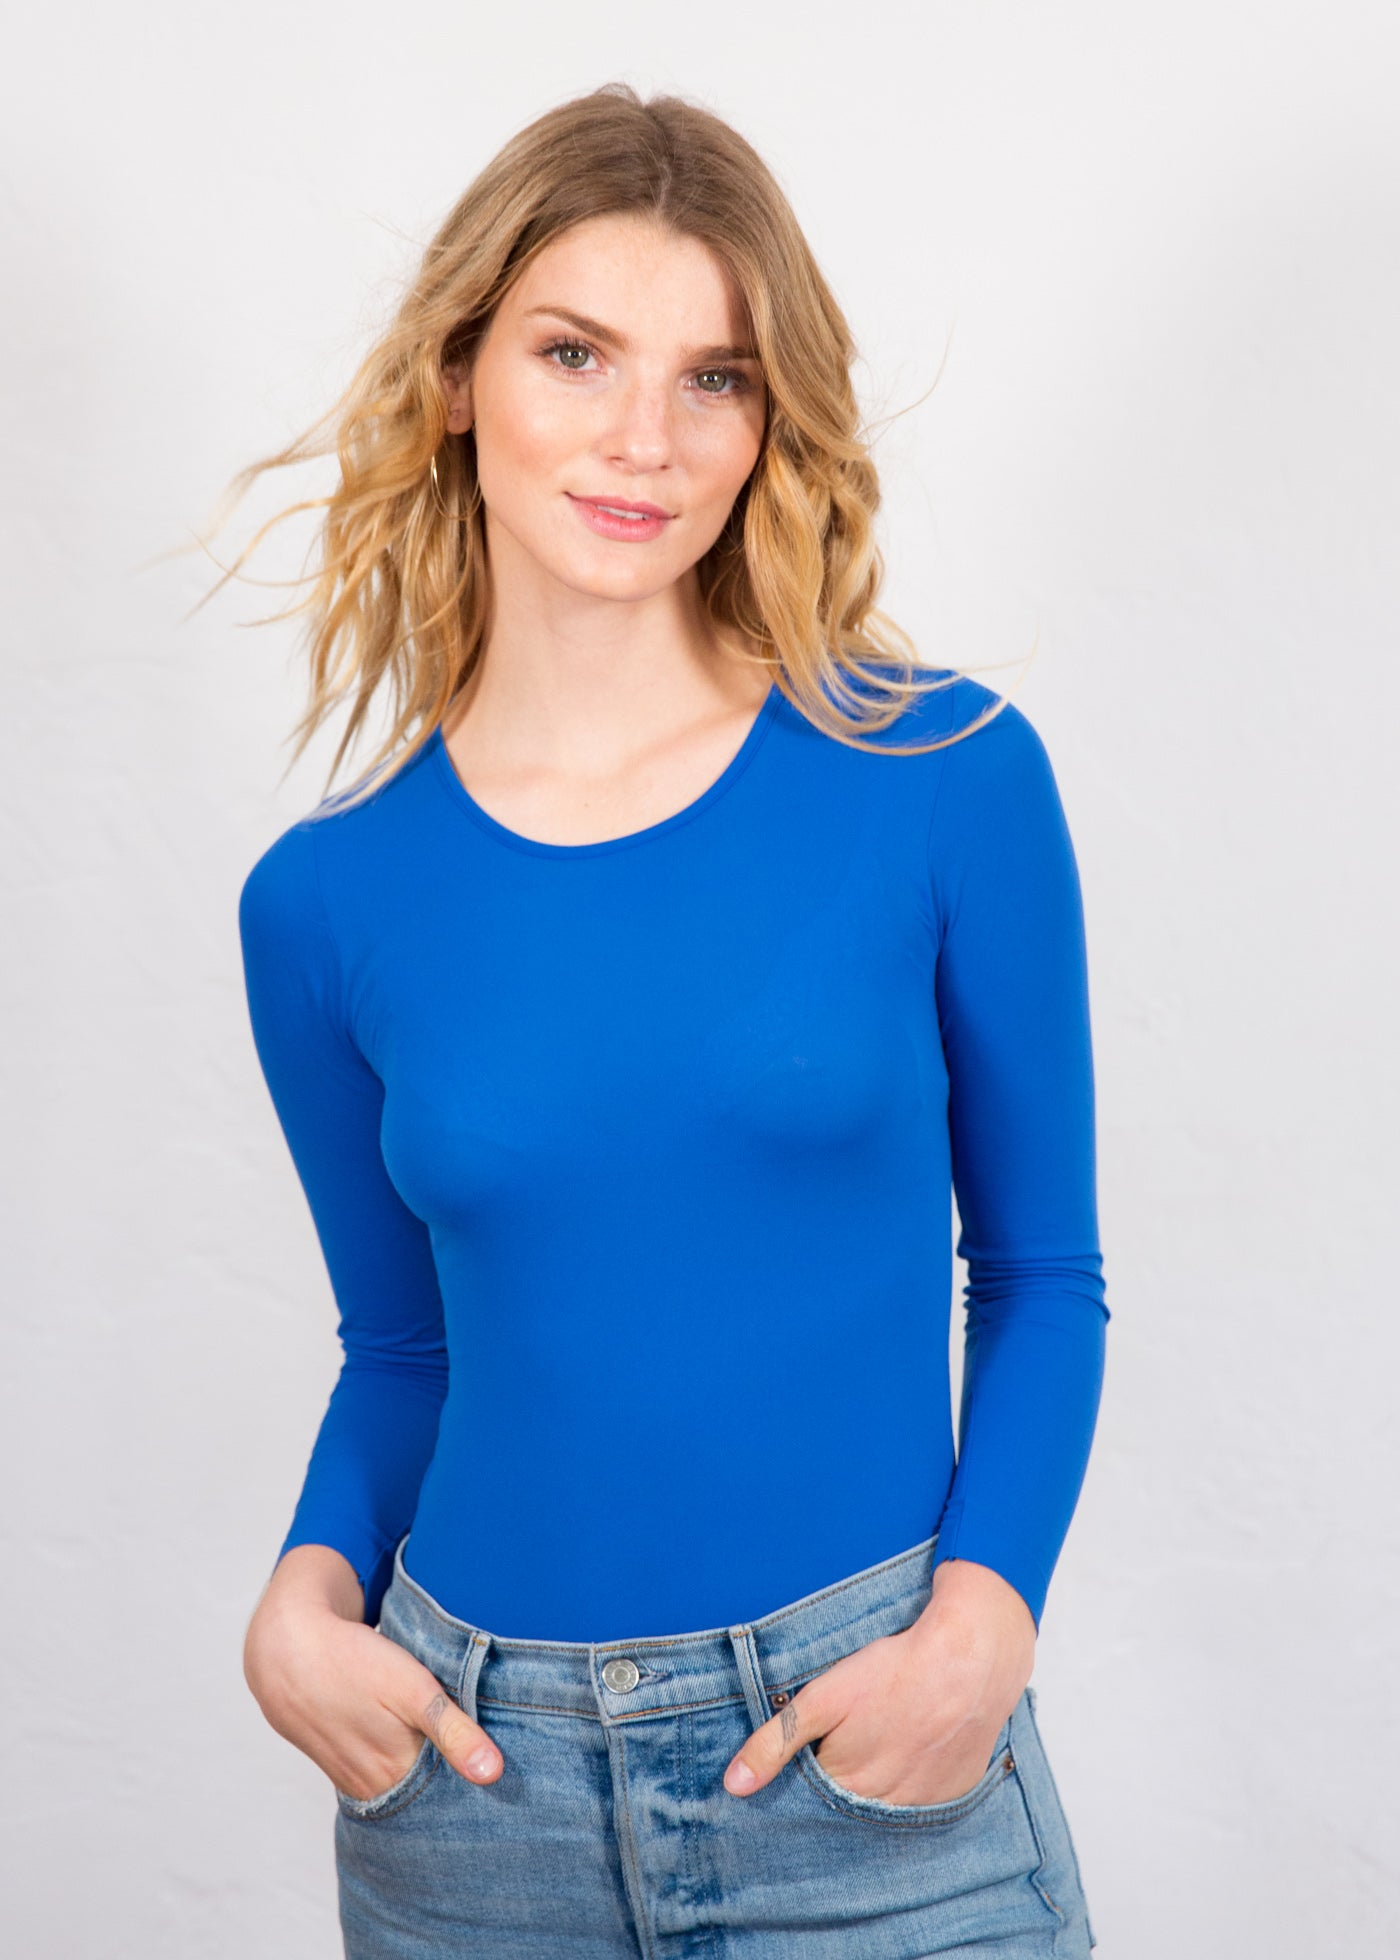 Crew Neck Sheer Top - New Colors!